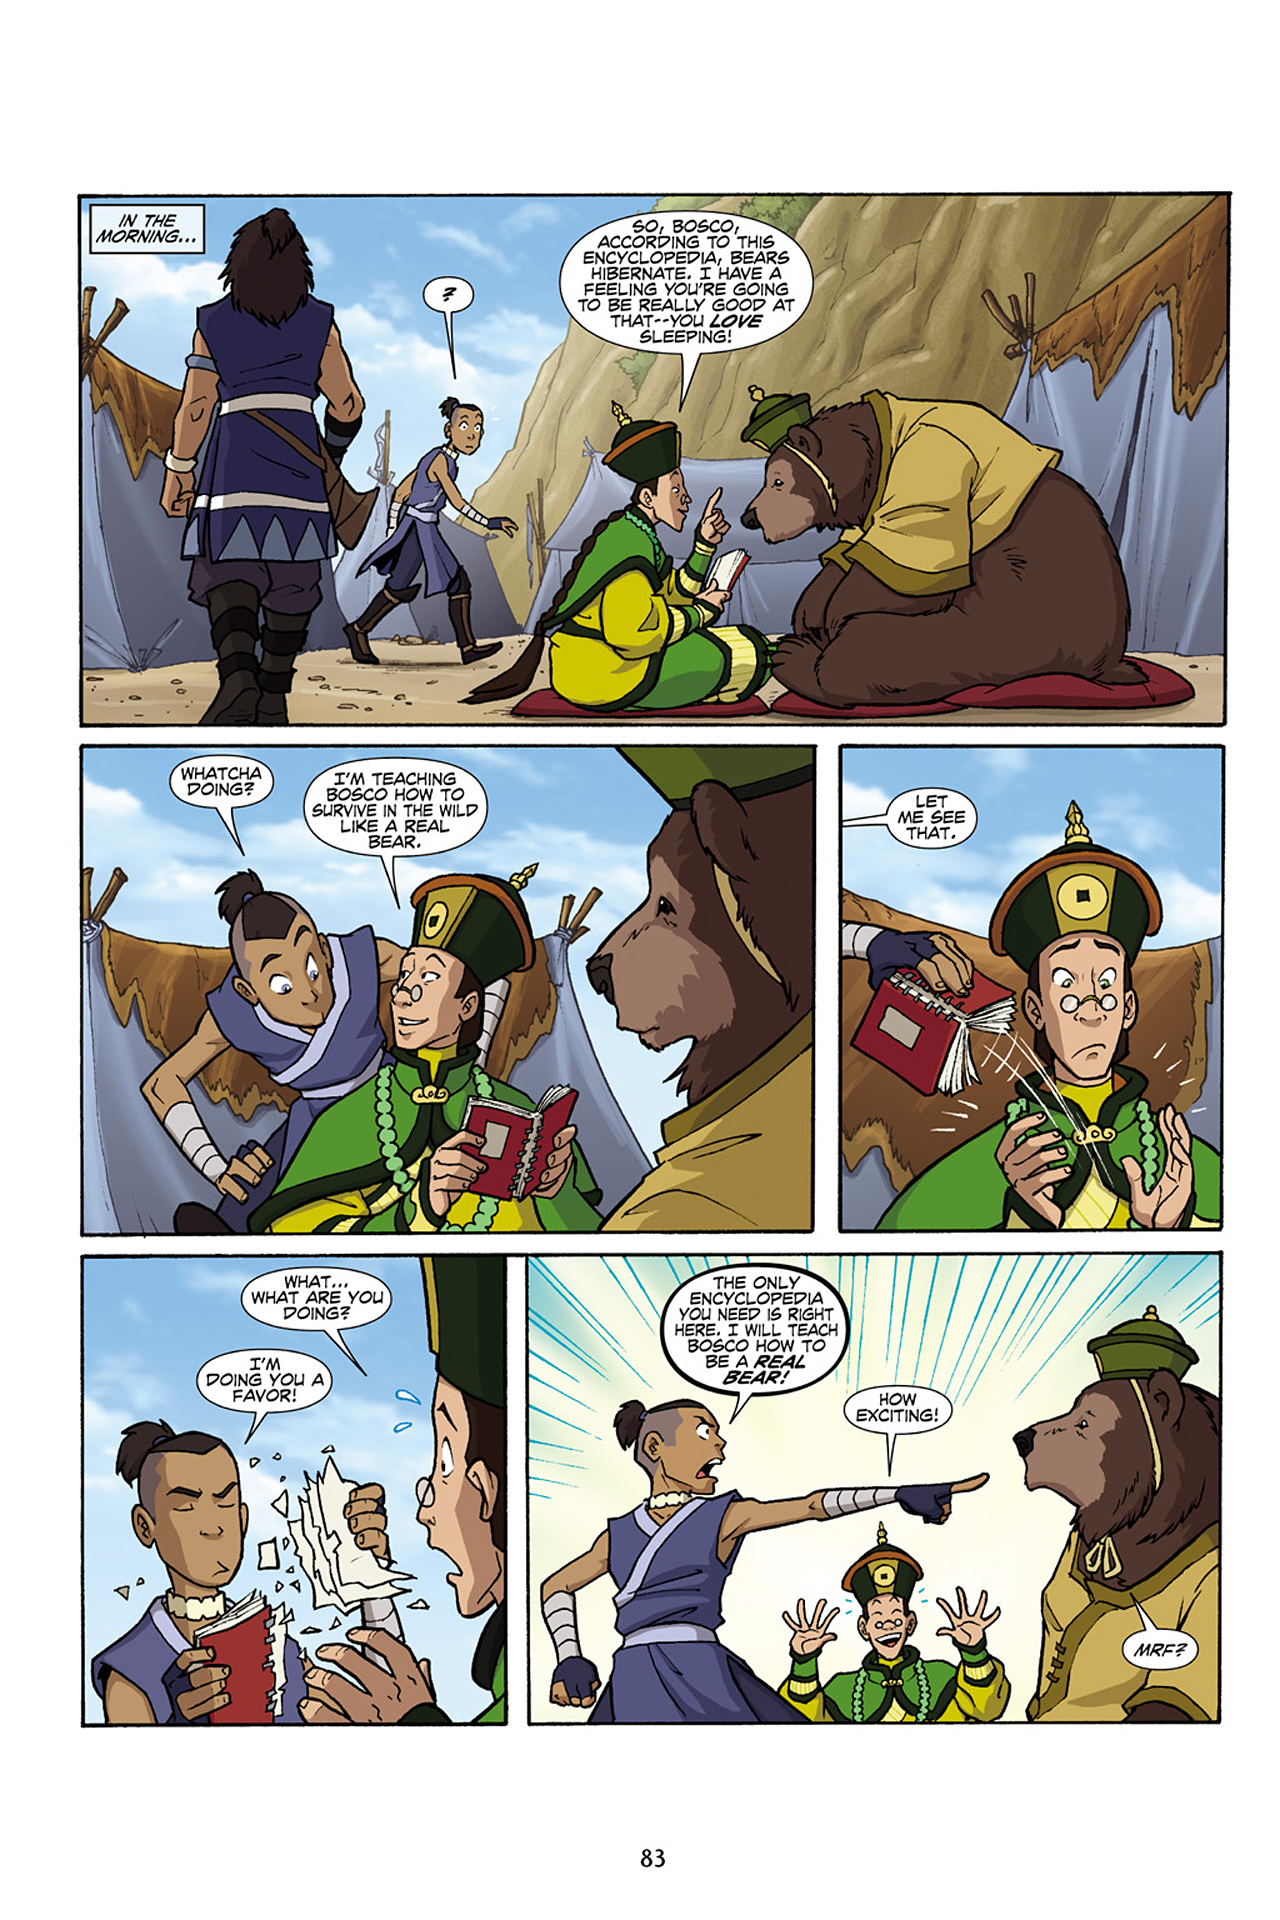 Nickelodeon Avatar: The Last Airbender - The Lost Adventures chap full pic 84